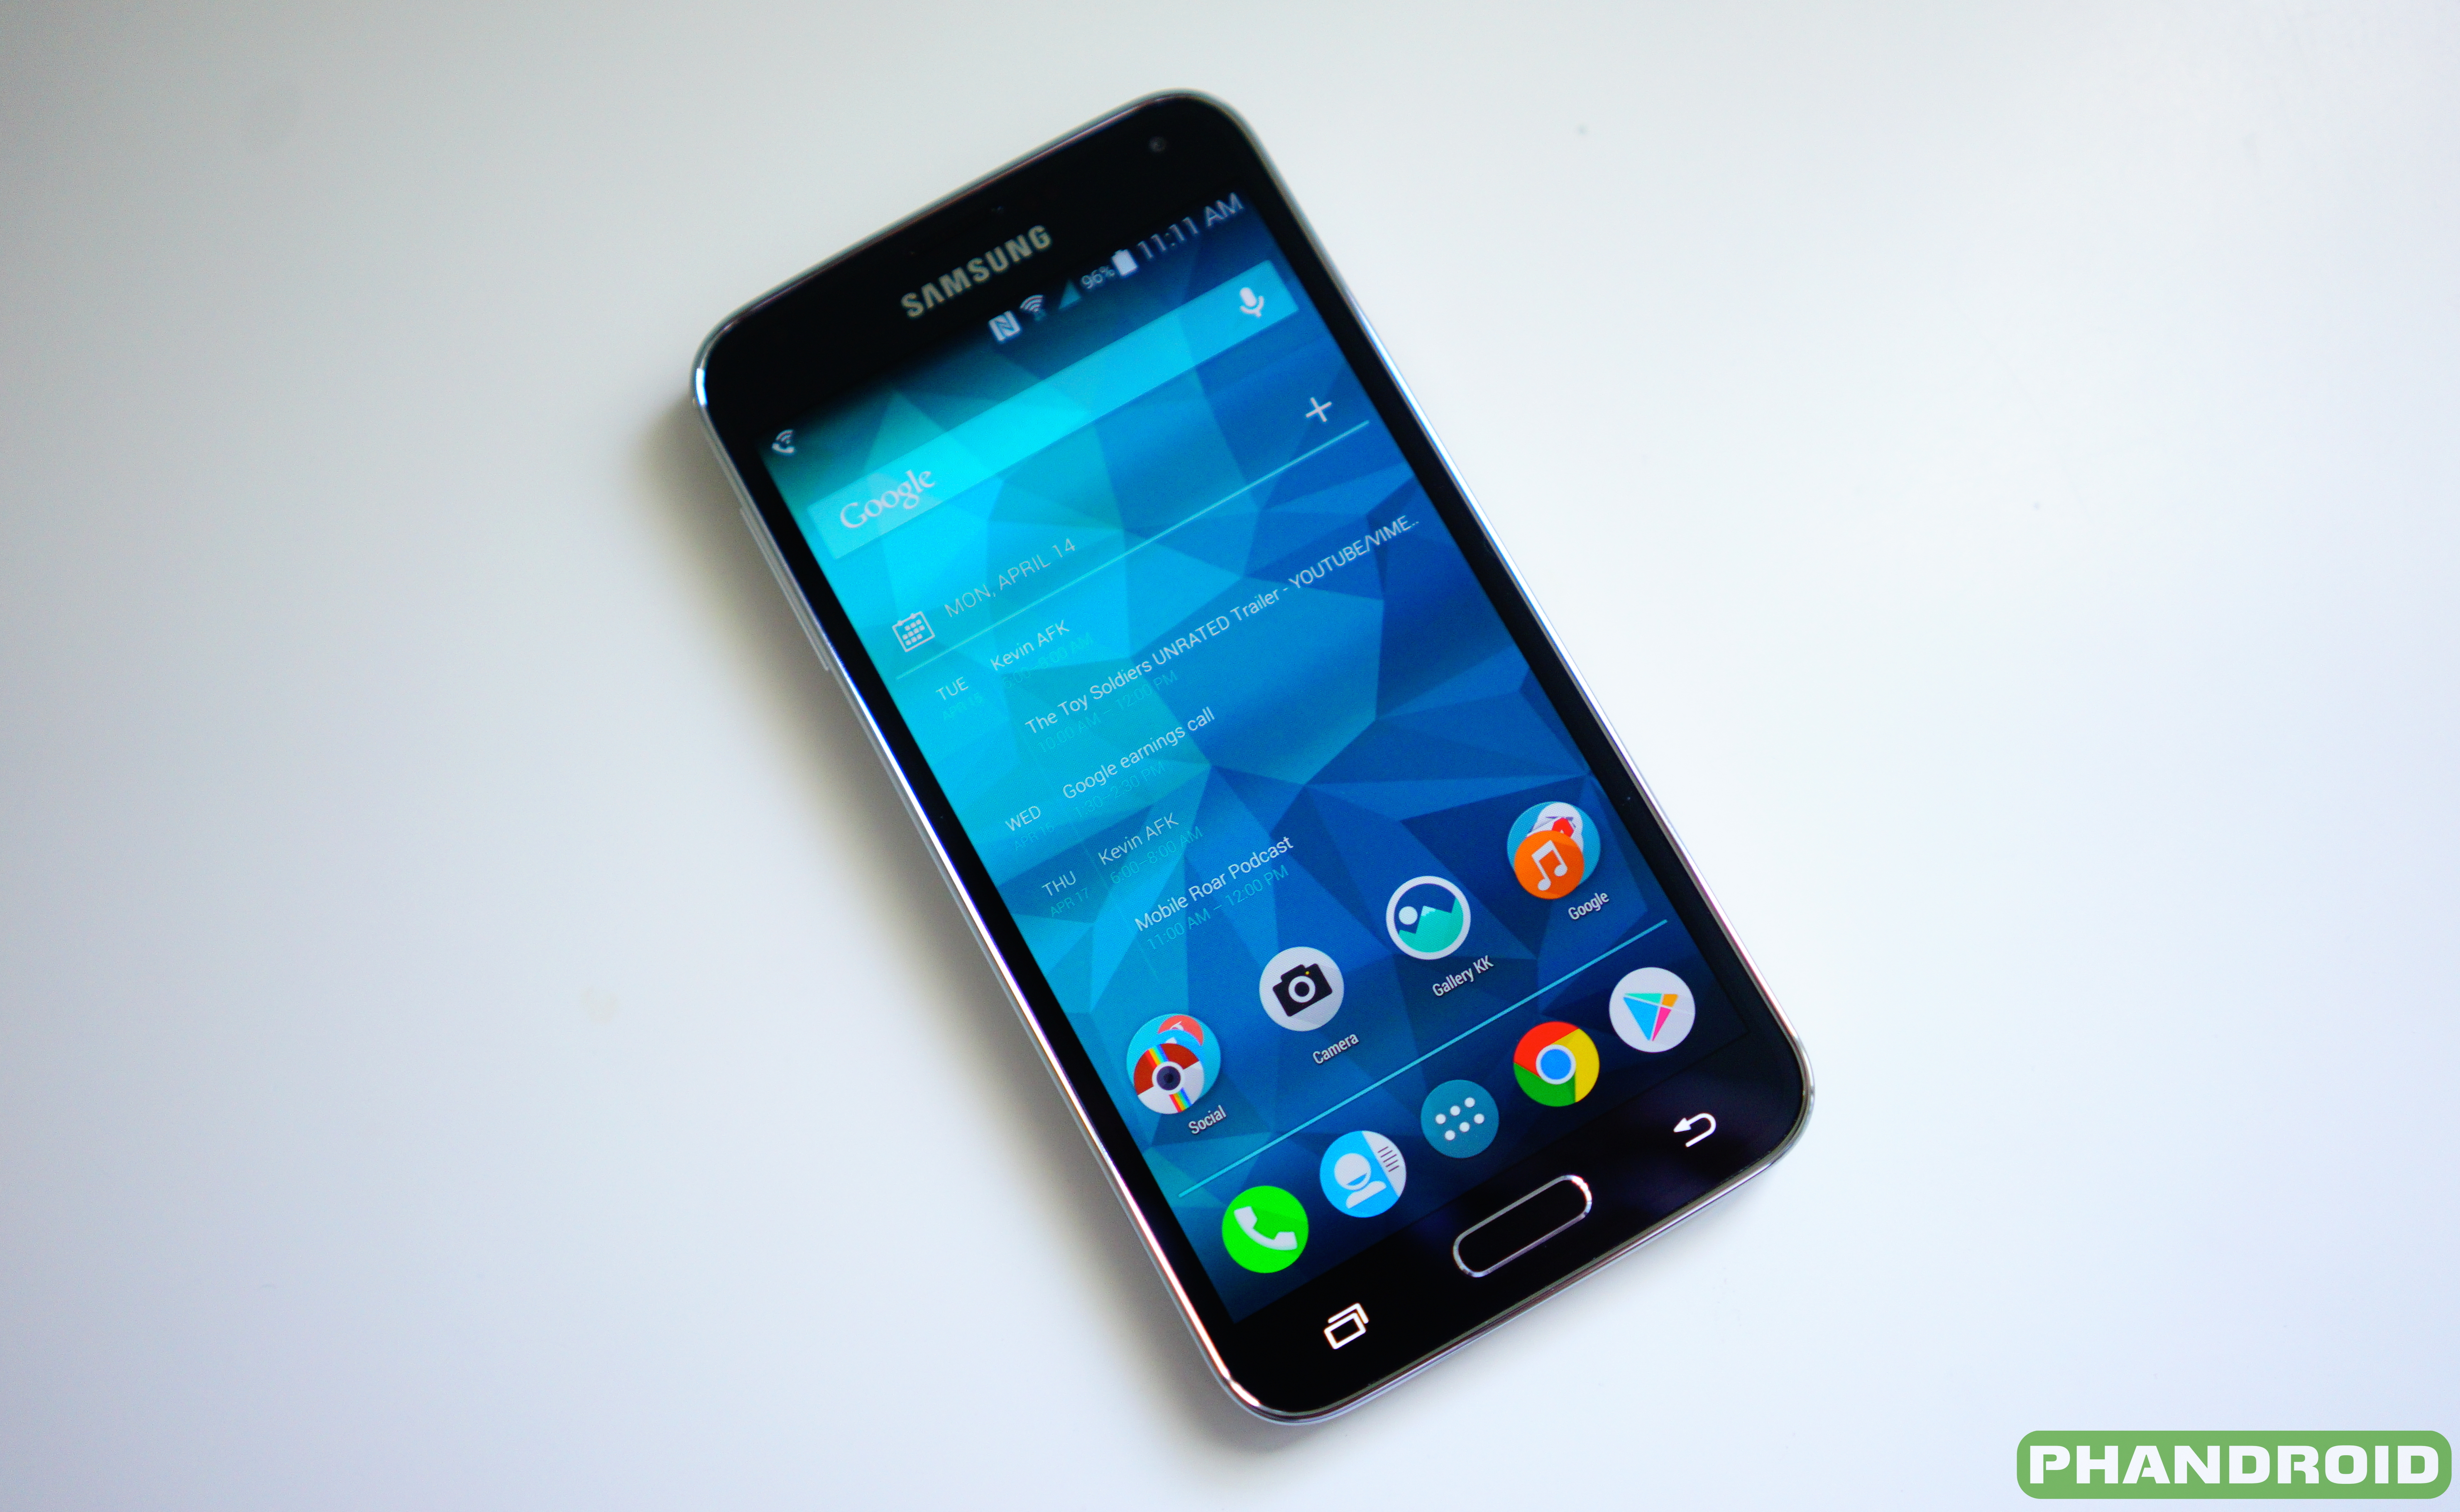 Samsung preps retail stores for Lollipop update rolling out